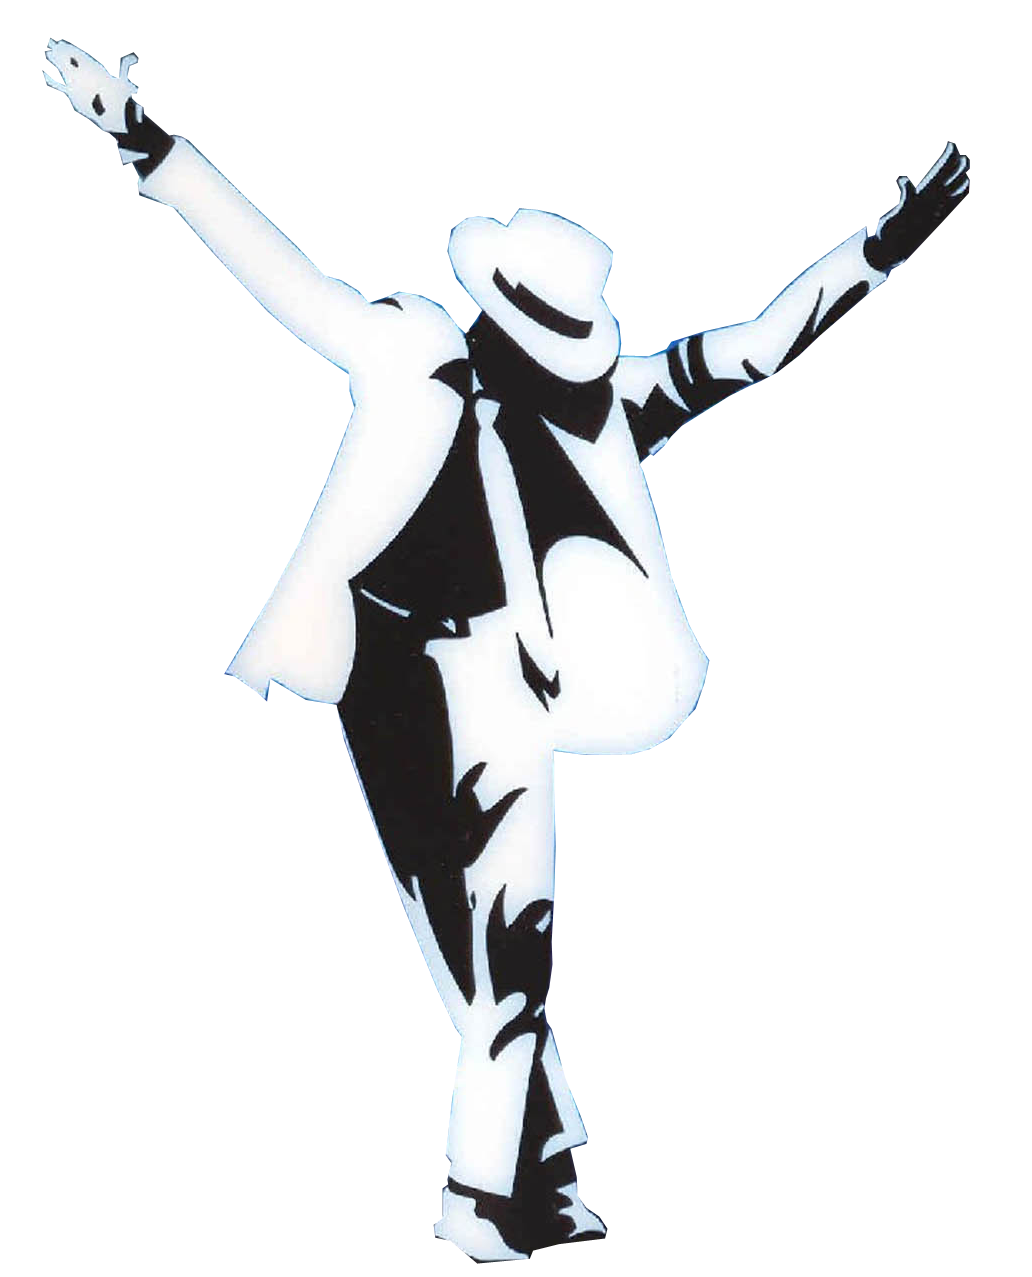 Michael jackson dancing png. Images free download